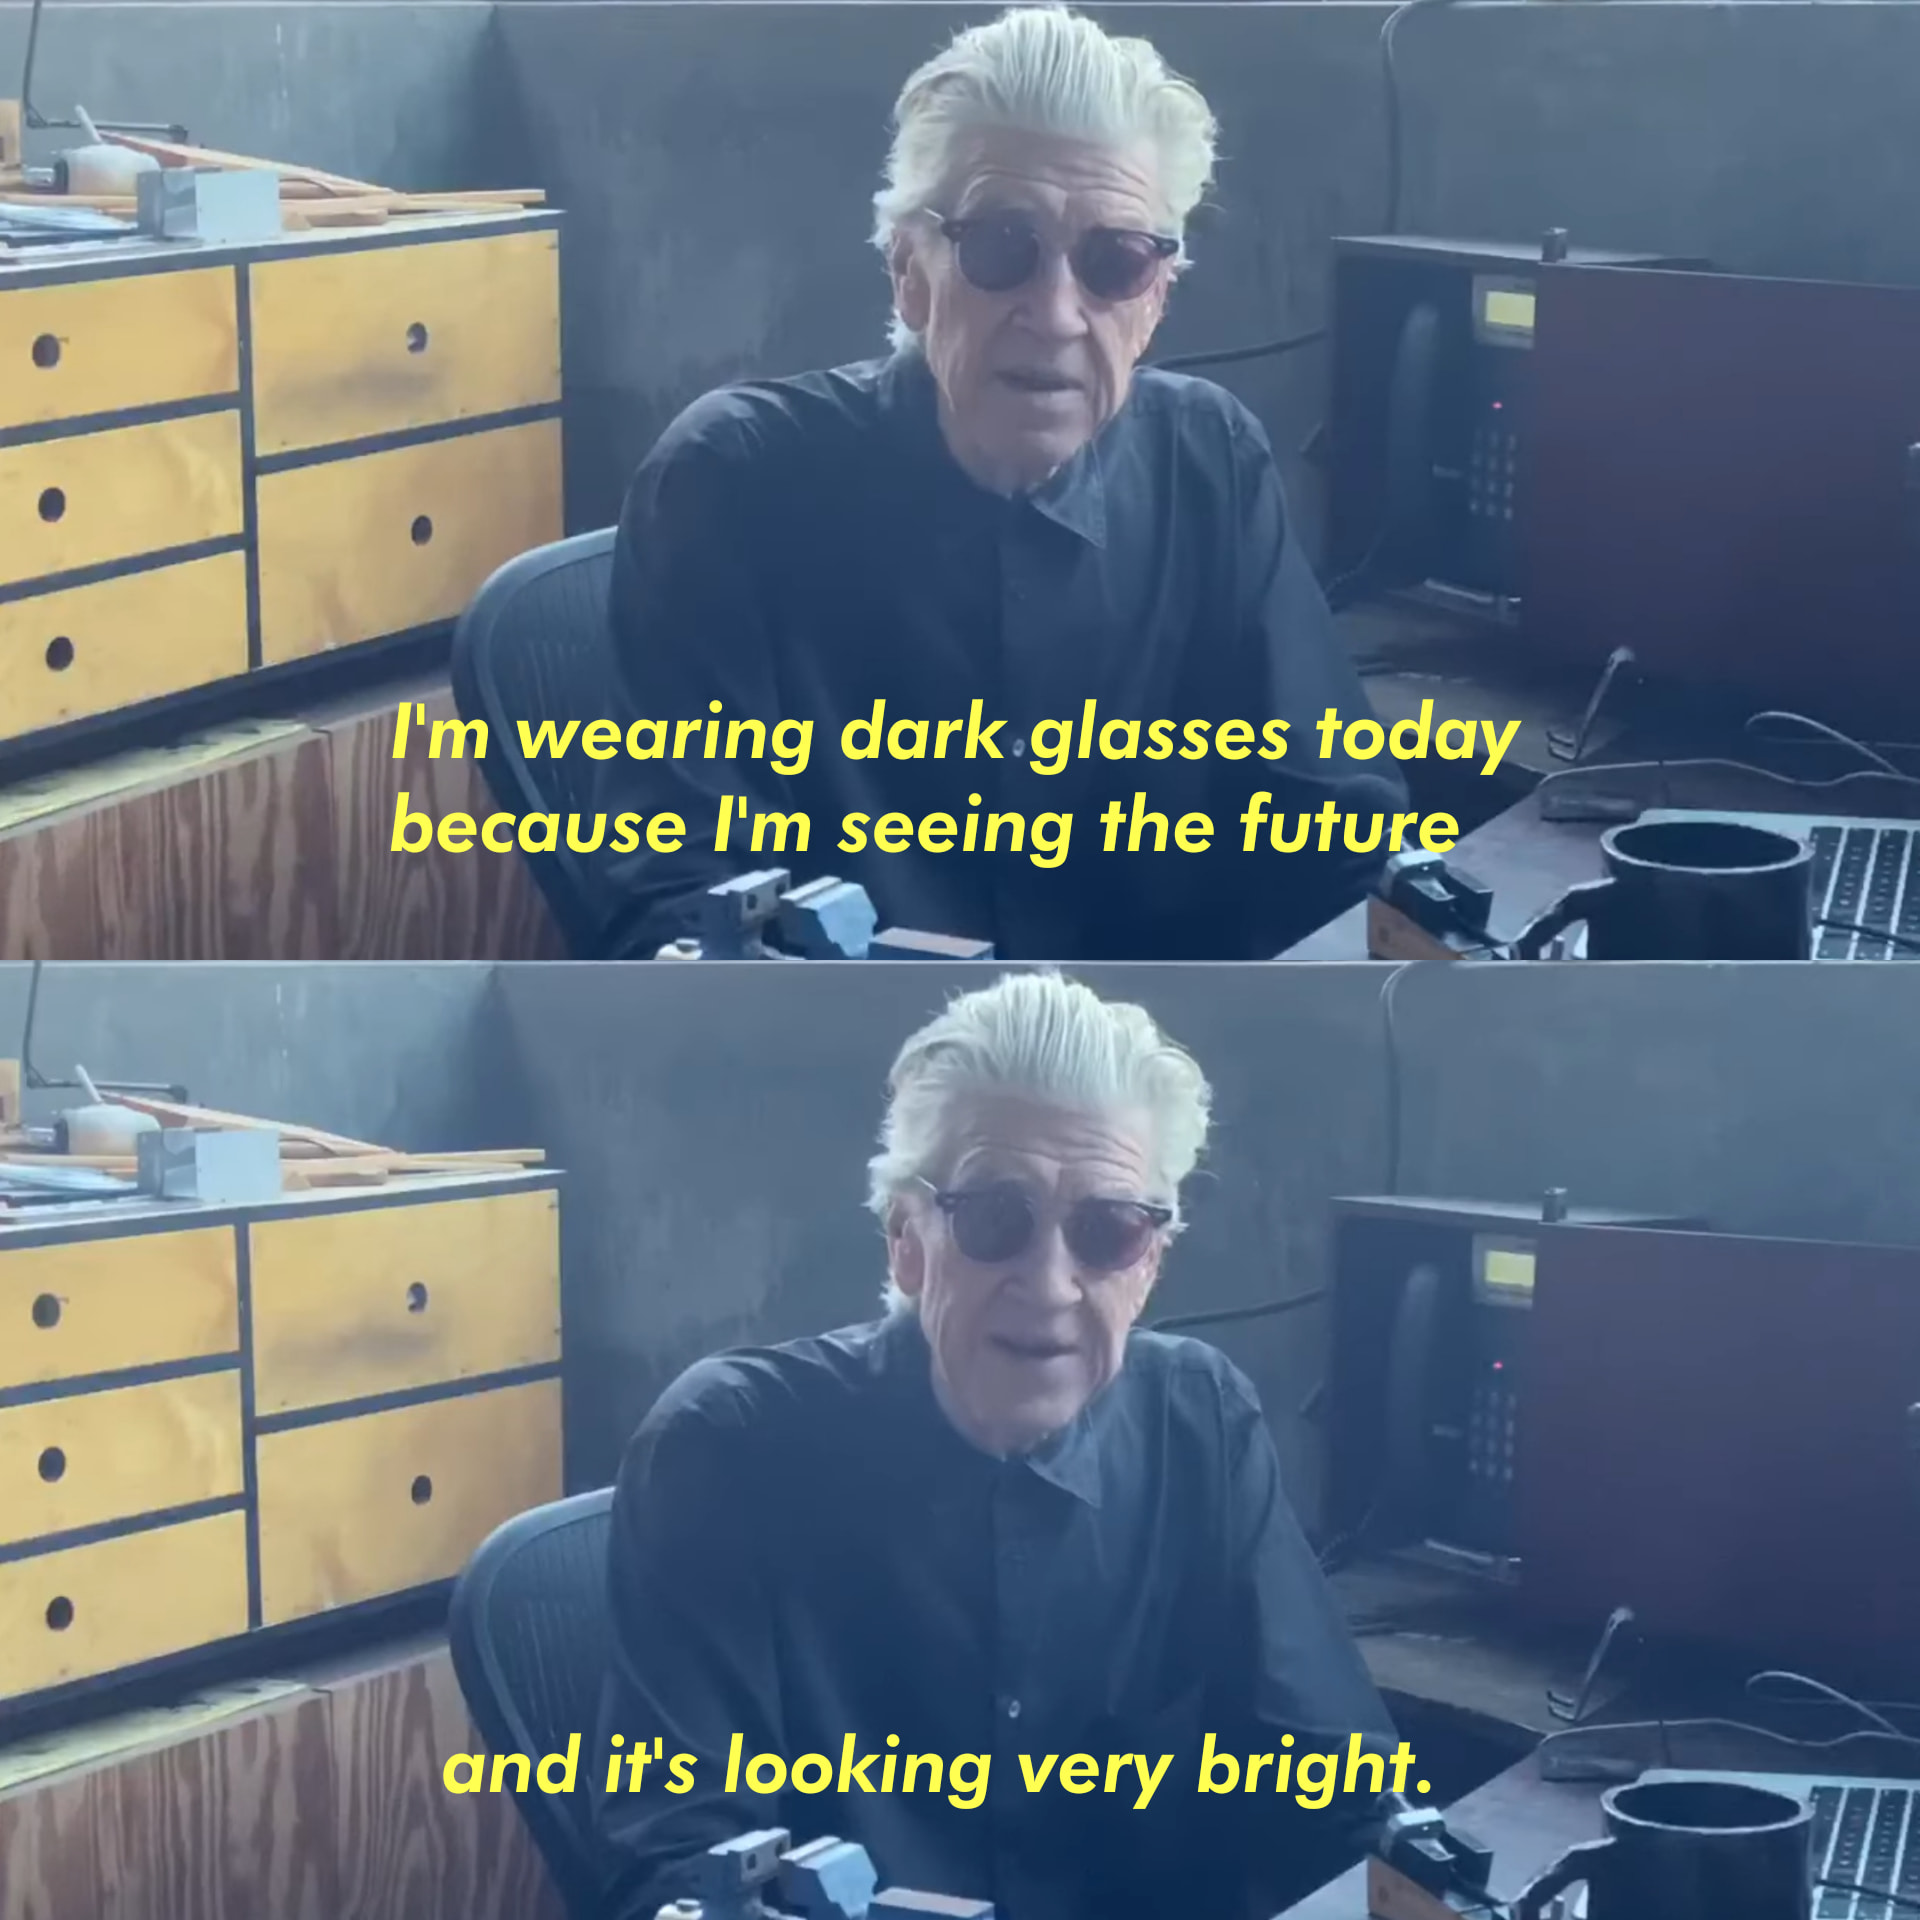 [Image] Dark Glasses to see the future